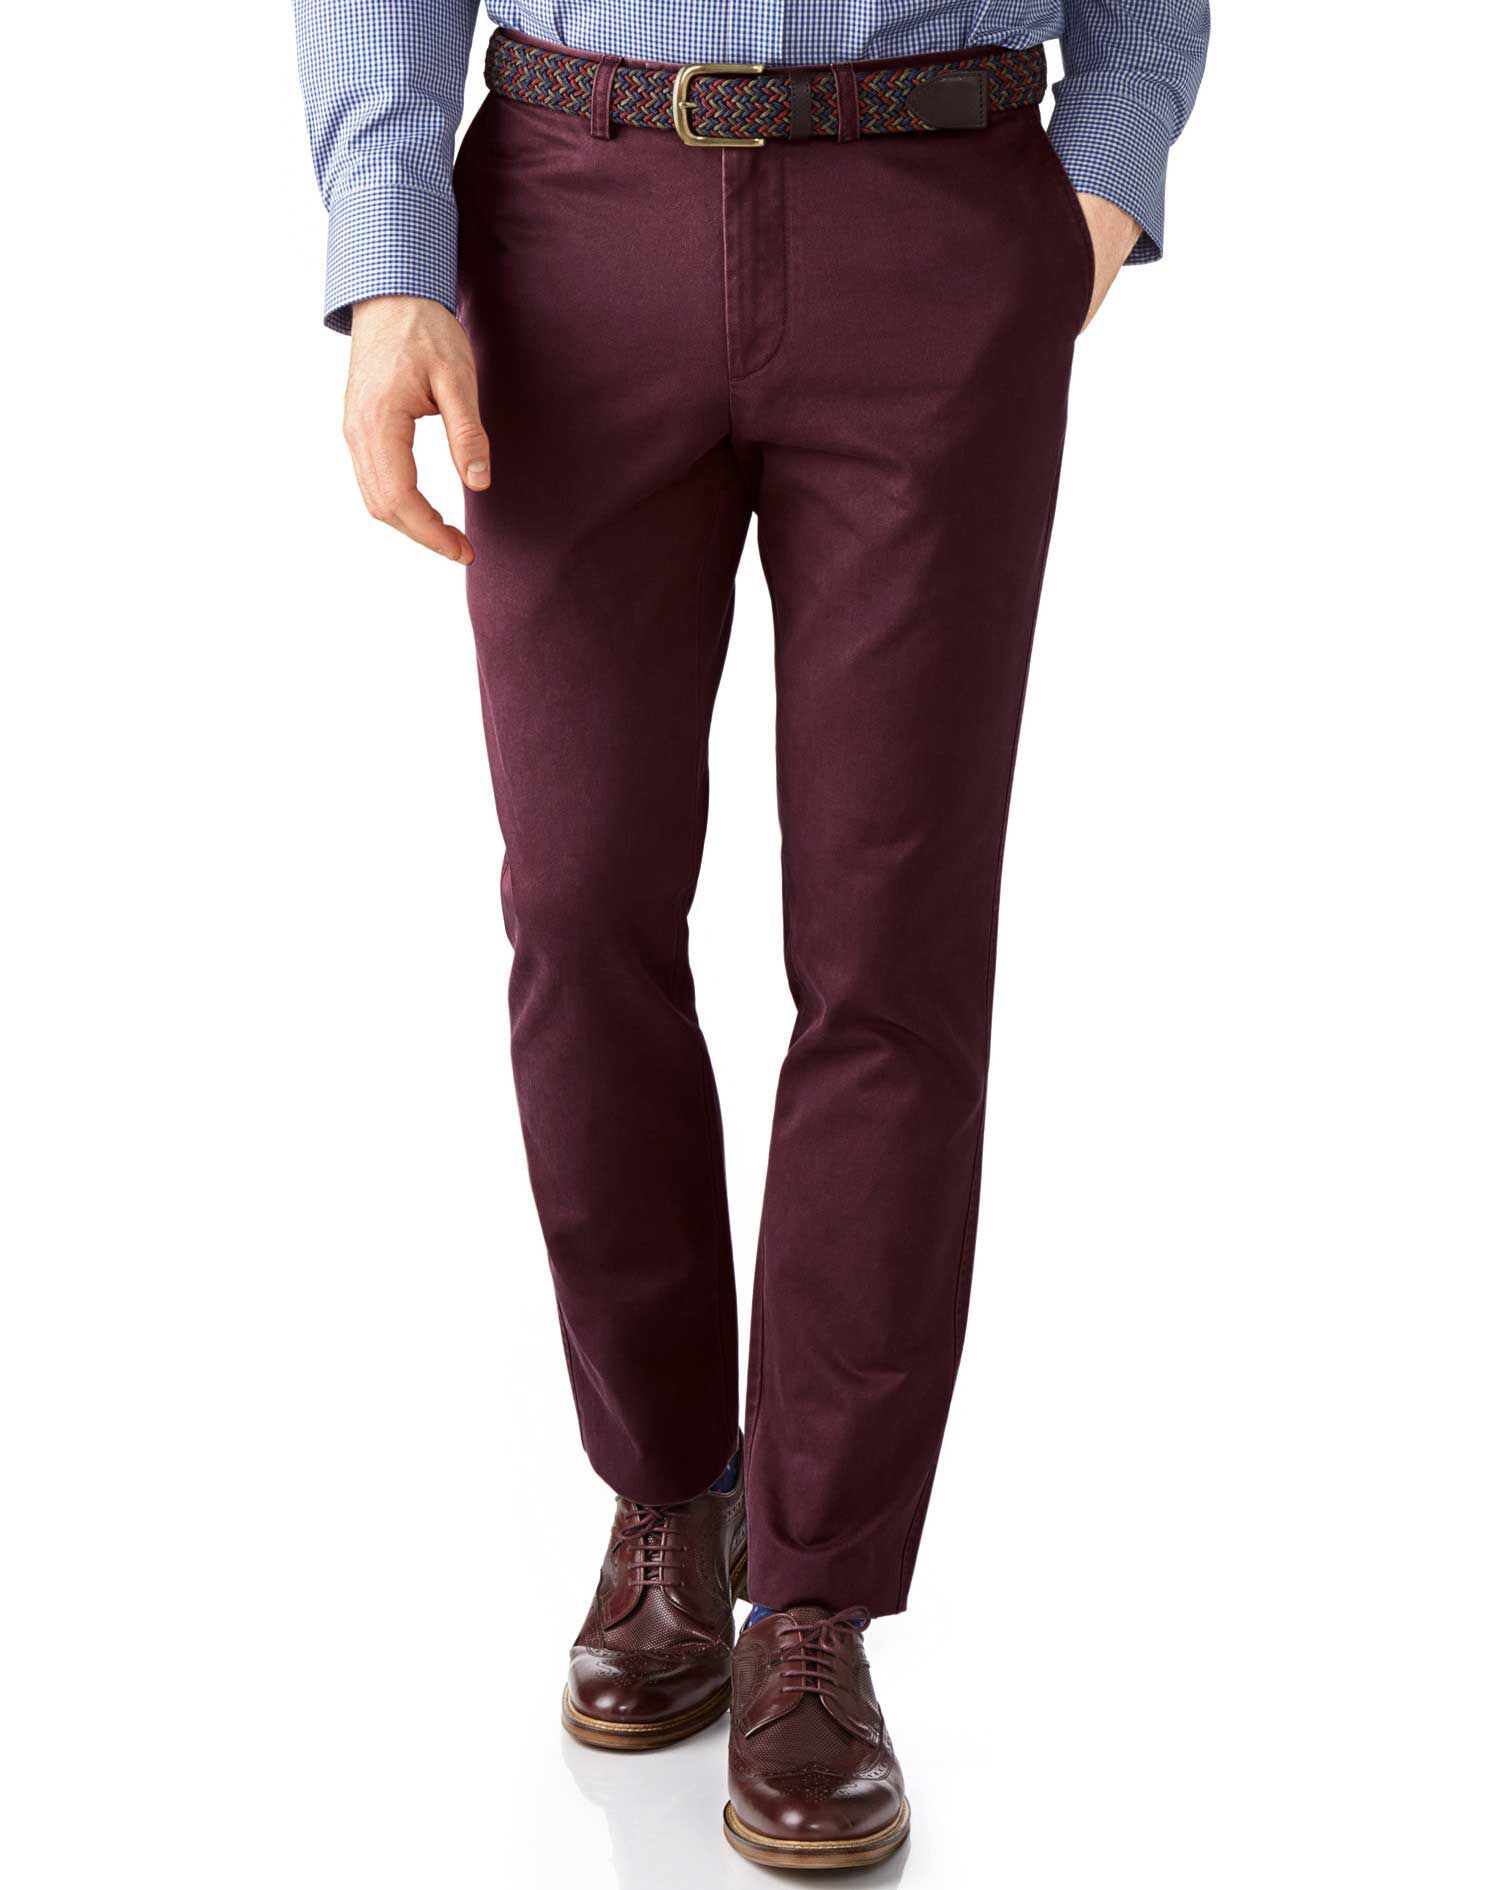 Wine Extra Slim Fit Flat Front Cotton Chino Trousers Size W32 L30 by Charles Tyrwhitt